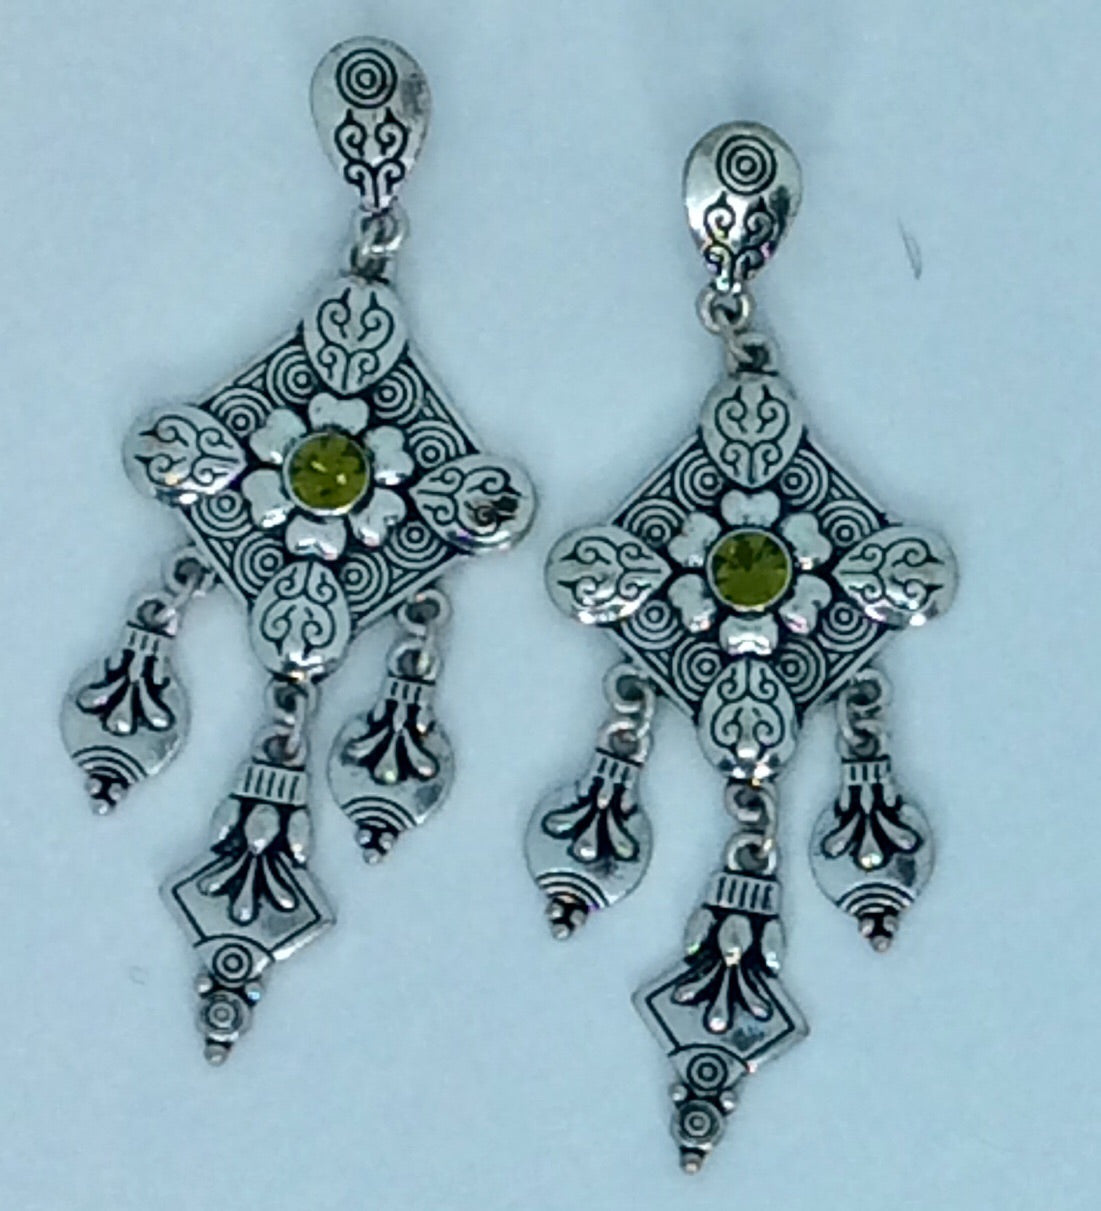 Silver with green stone centre earrings